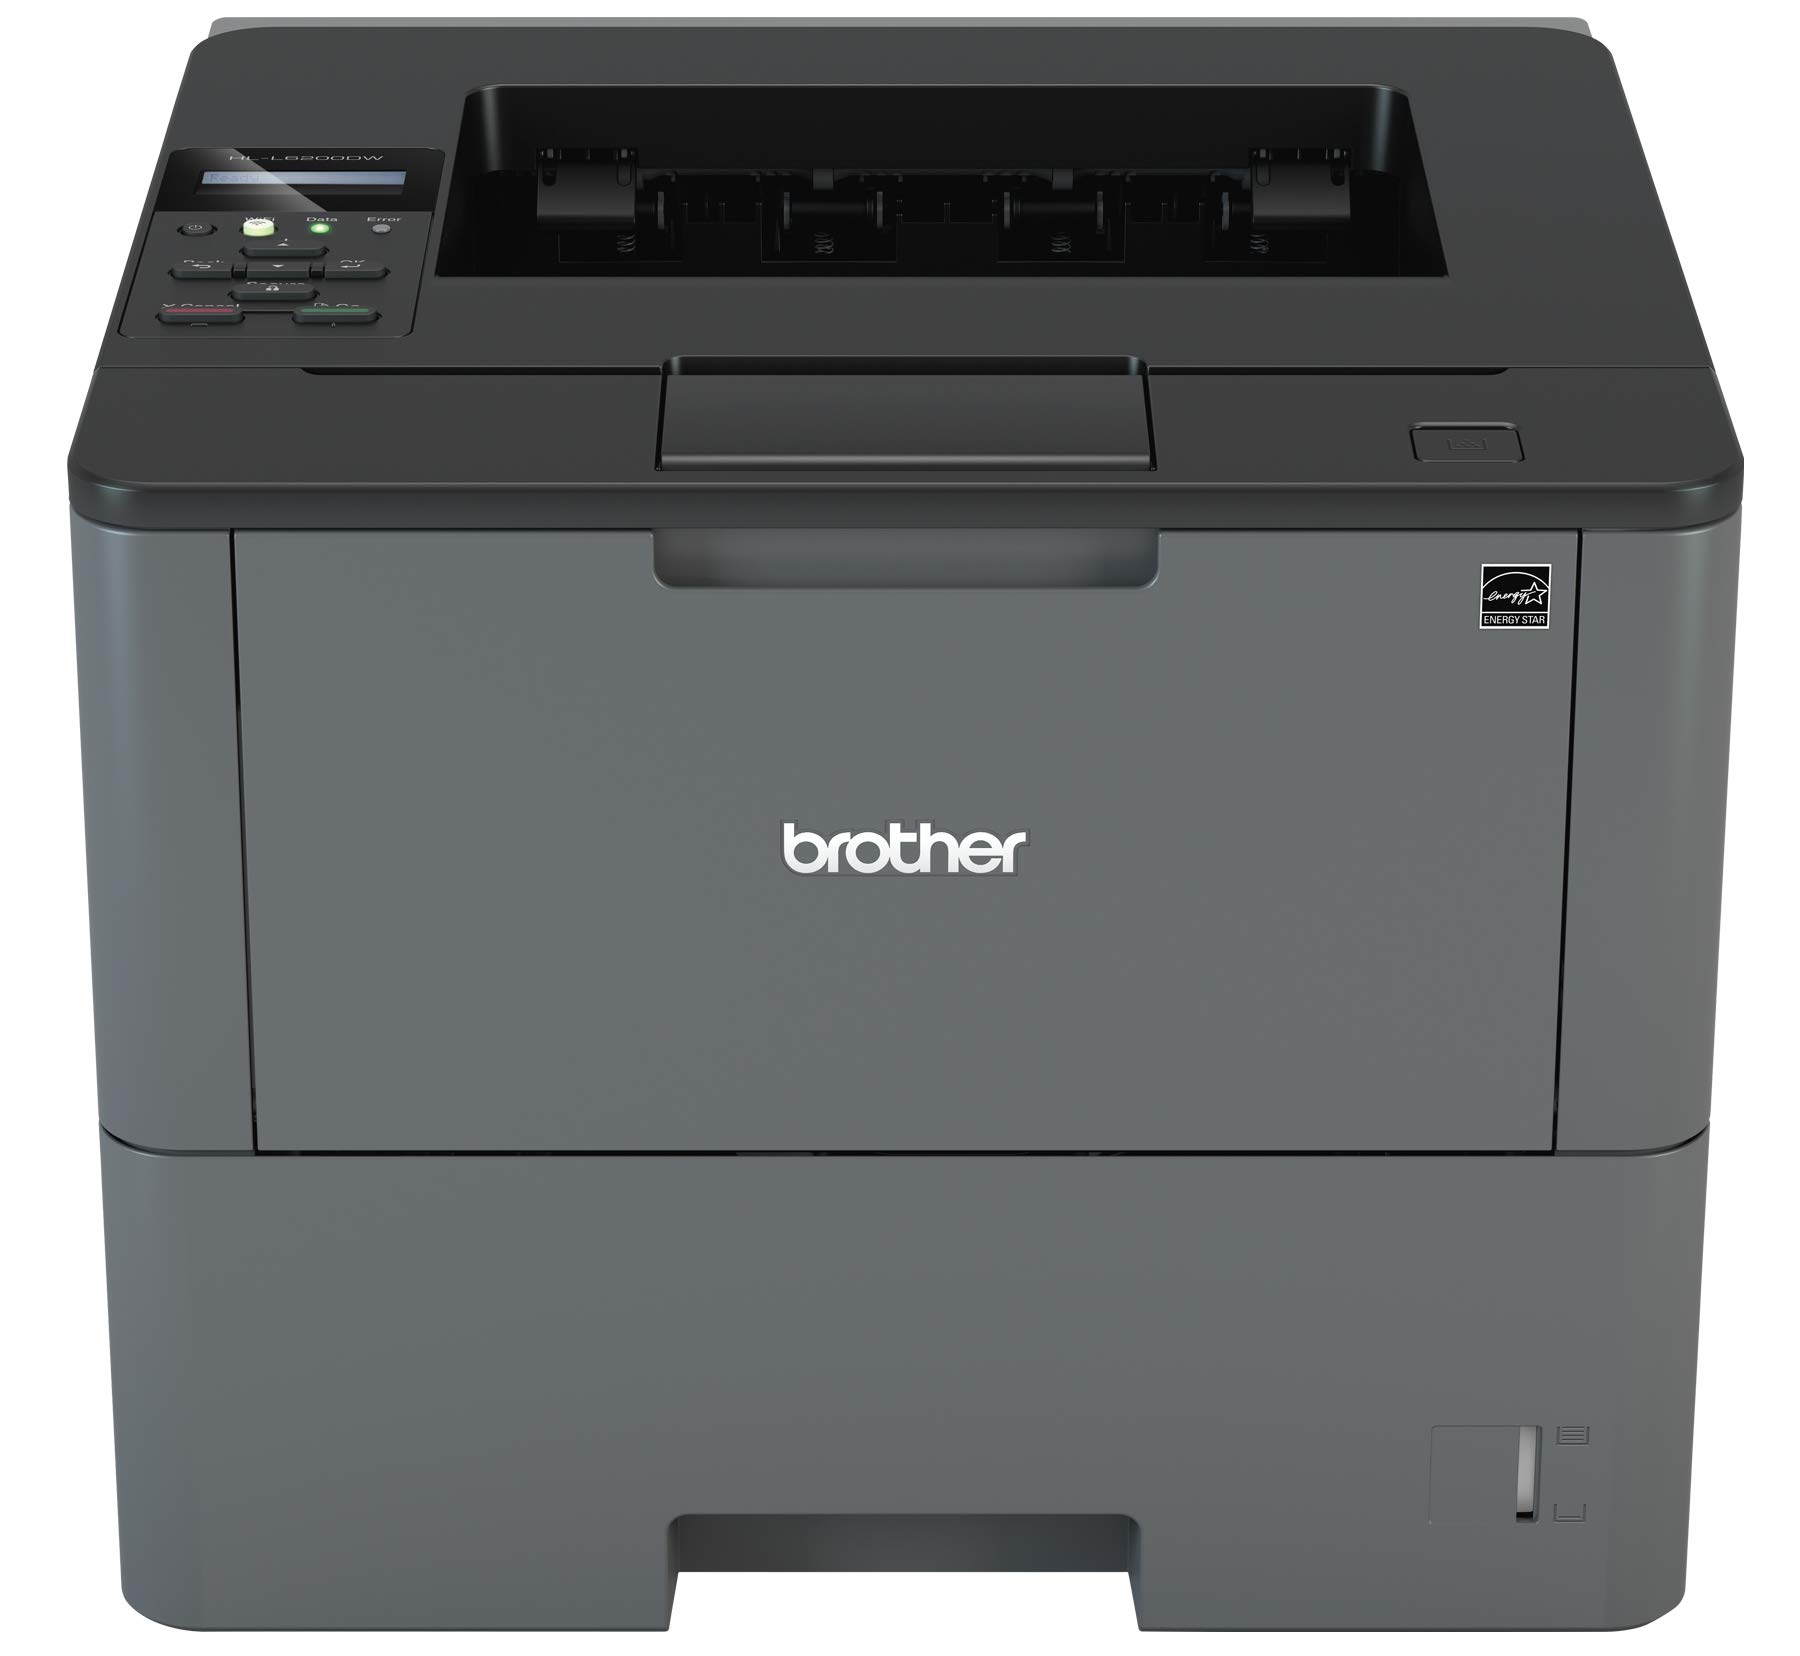 Brother Renewed- RHLL-6200DW (HLL-6200DW) Business Laser Printer with Wireless Networking, Duplex Printing, and Large Paper Capacity, Amazon Dash Replenishment Enabled by Brother (Image #1)